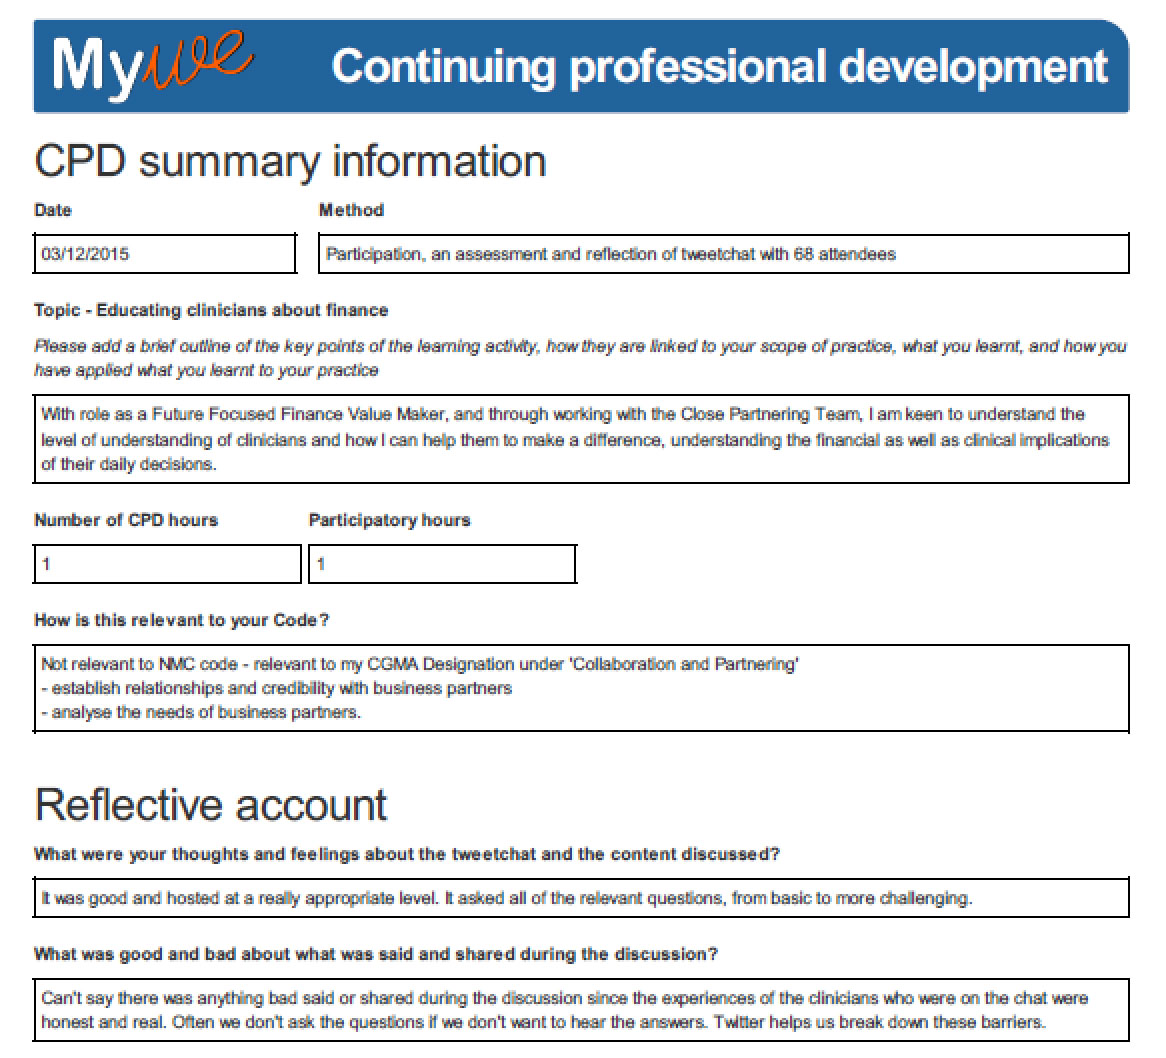 continuing professional development plan The following dissertation focuses on a personal development technique called continuing professional development  continuing development  plan.